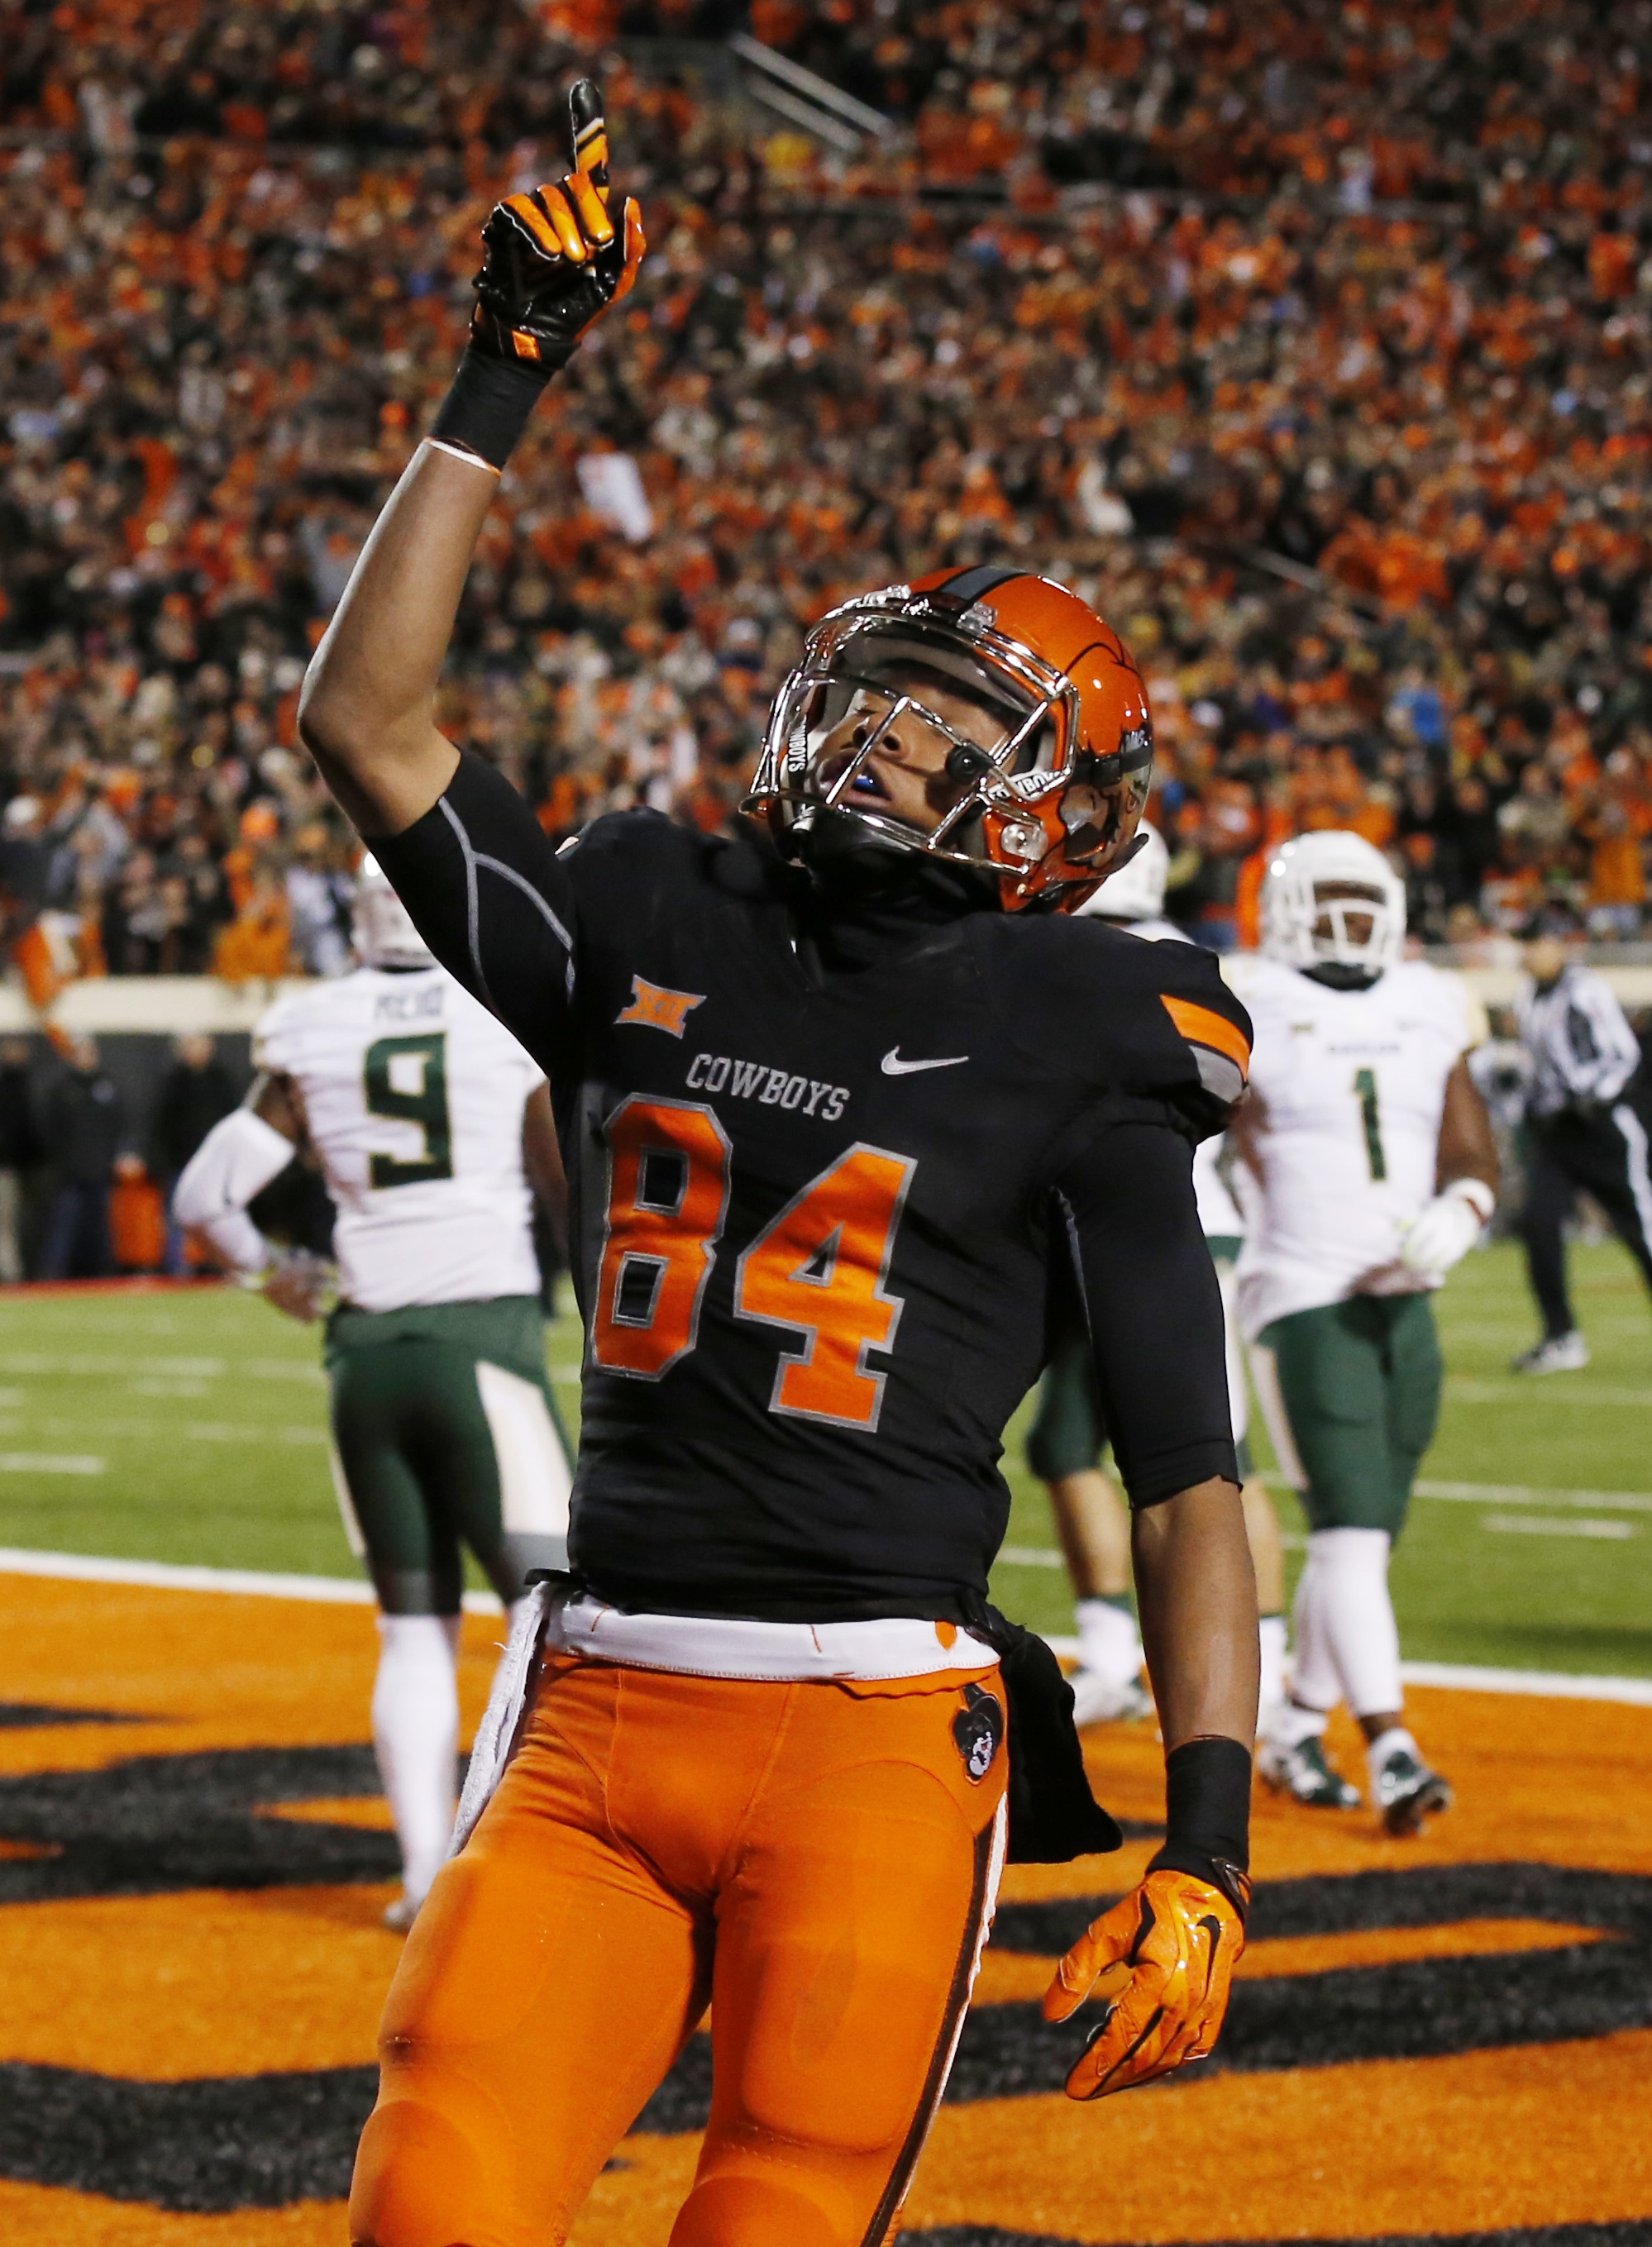 Oklahoma State wide receiver Jalen McCleskey (84) celebrates after scoring in the first quarter of an NCAA college football game against Baylor in Stillwater, Okla., Saturday, Nov. 21, 2015. (AP Photo/Sue Ogrocki)